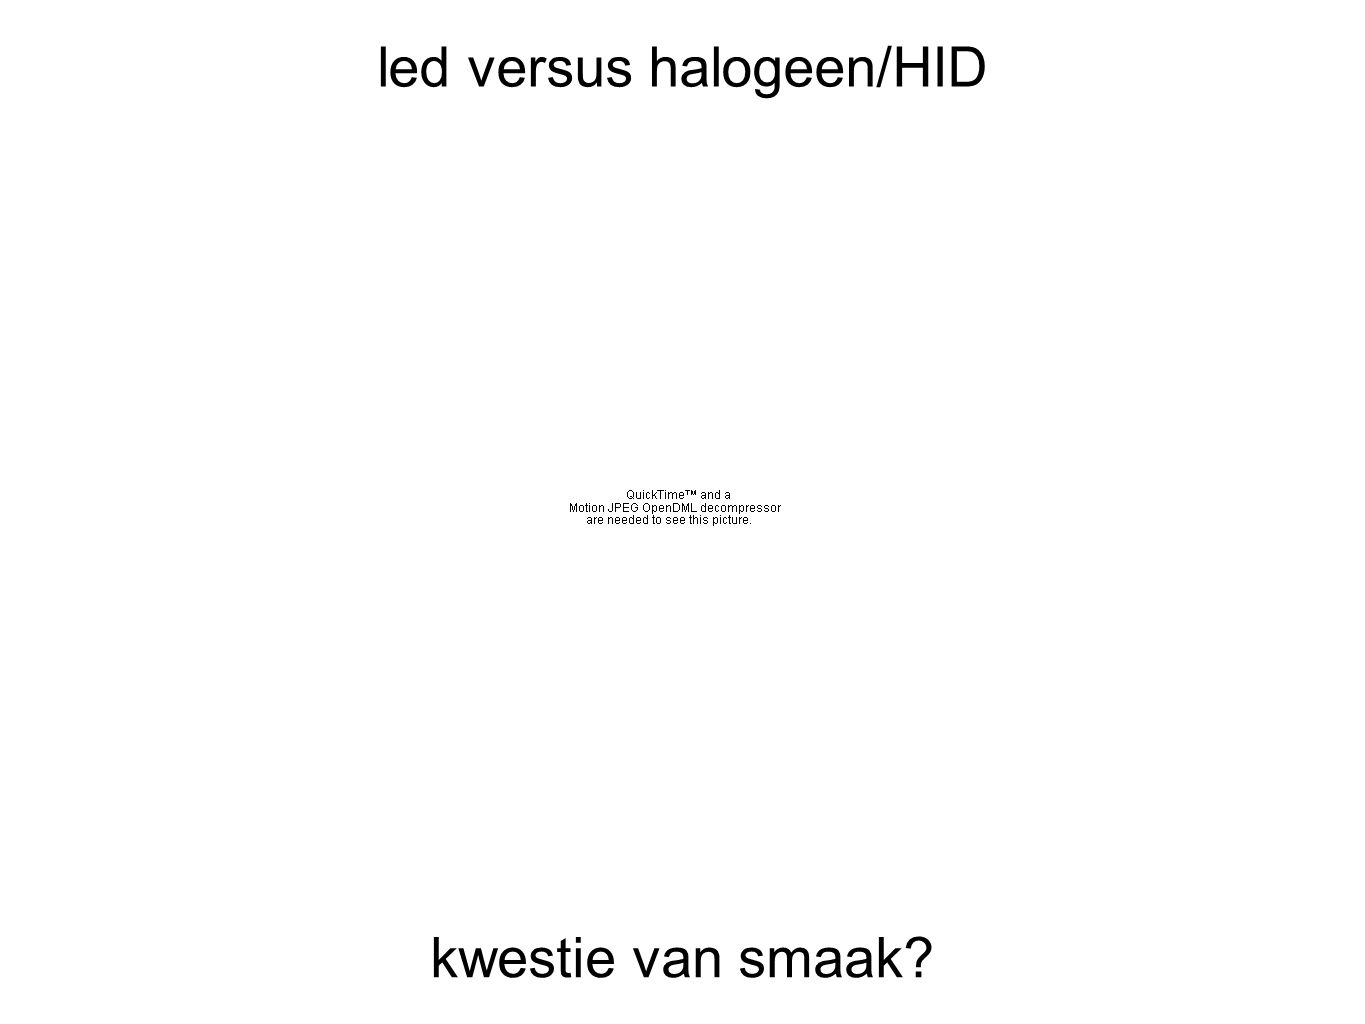 led versus halogeen/HID